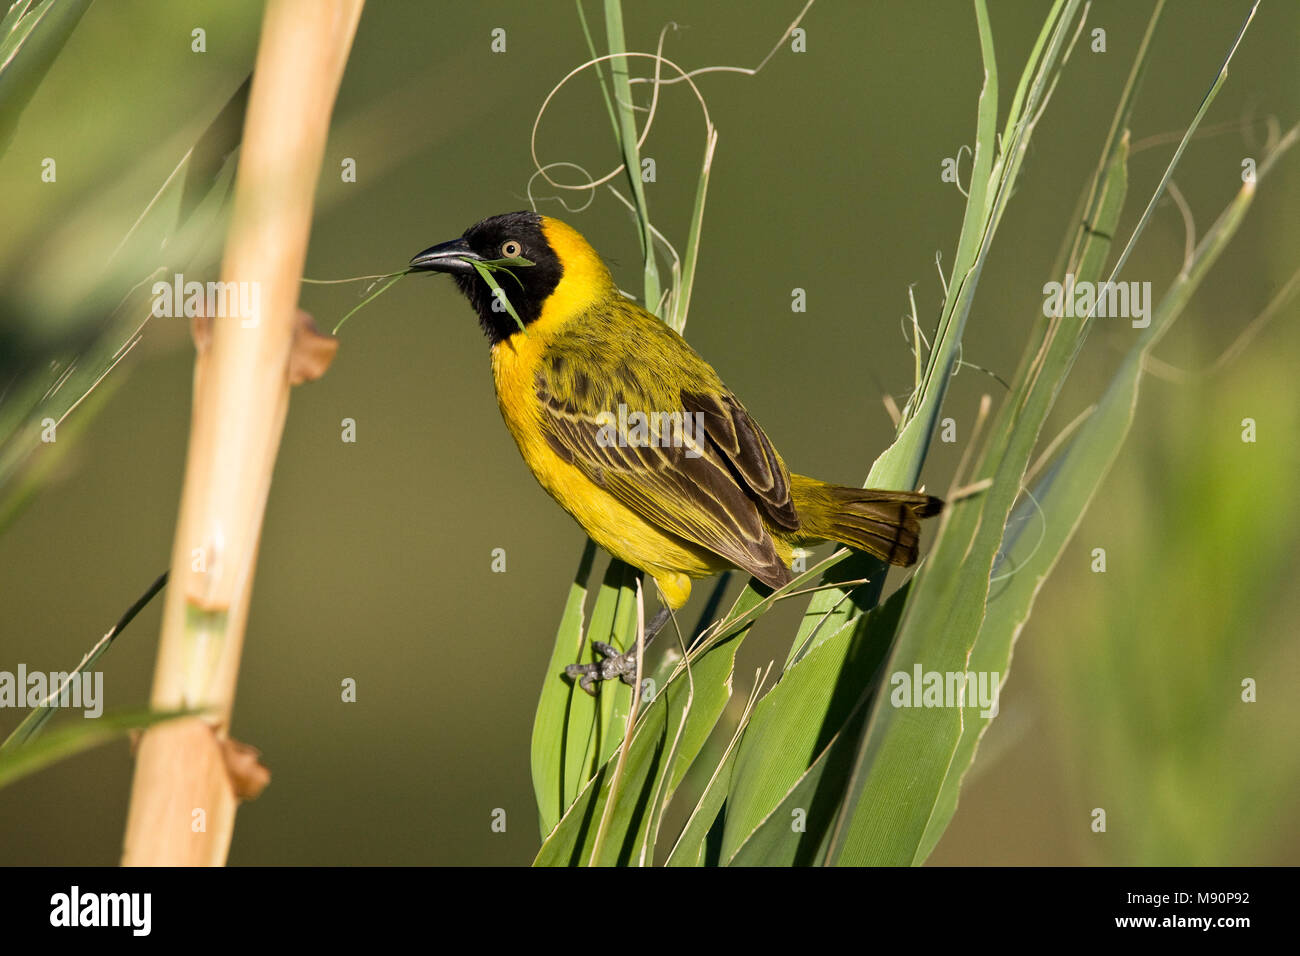 Mannetje Kleine Textorwever met nest materiaal Namibie, Male Lesser Masked-Weaver with nest material Namibia - Stock Image